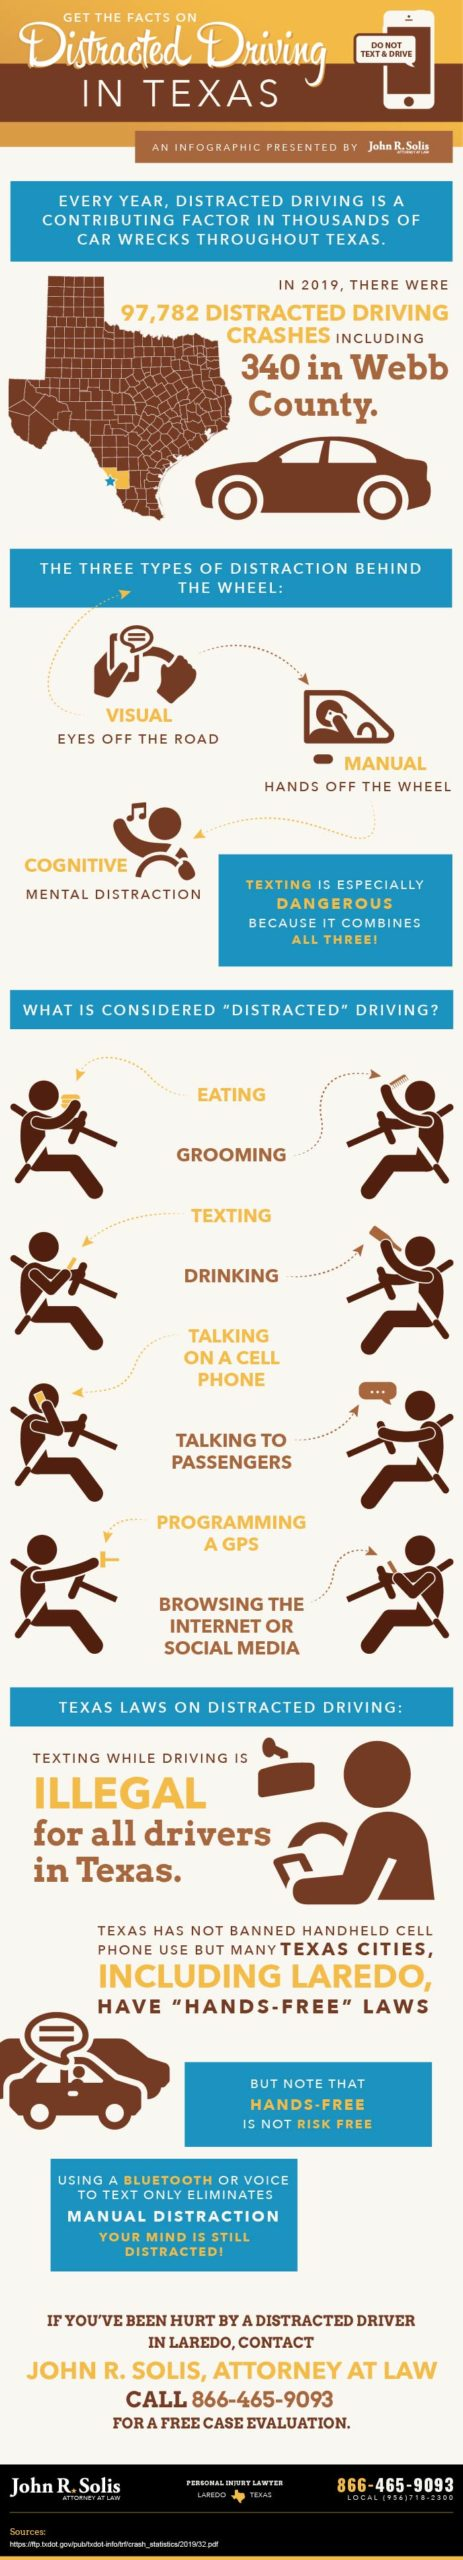 Solis Distracted Driving infographic